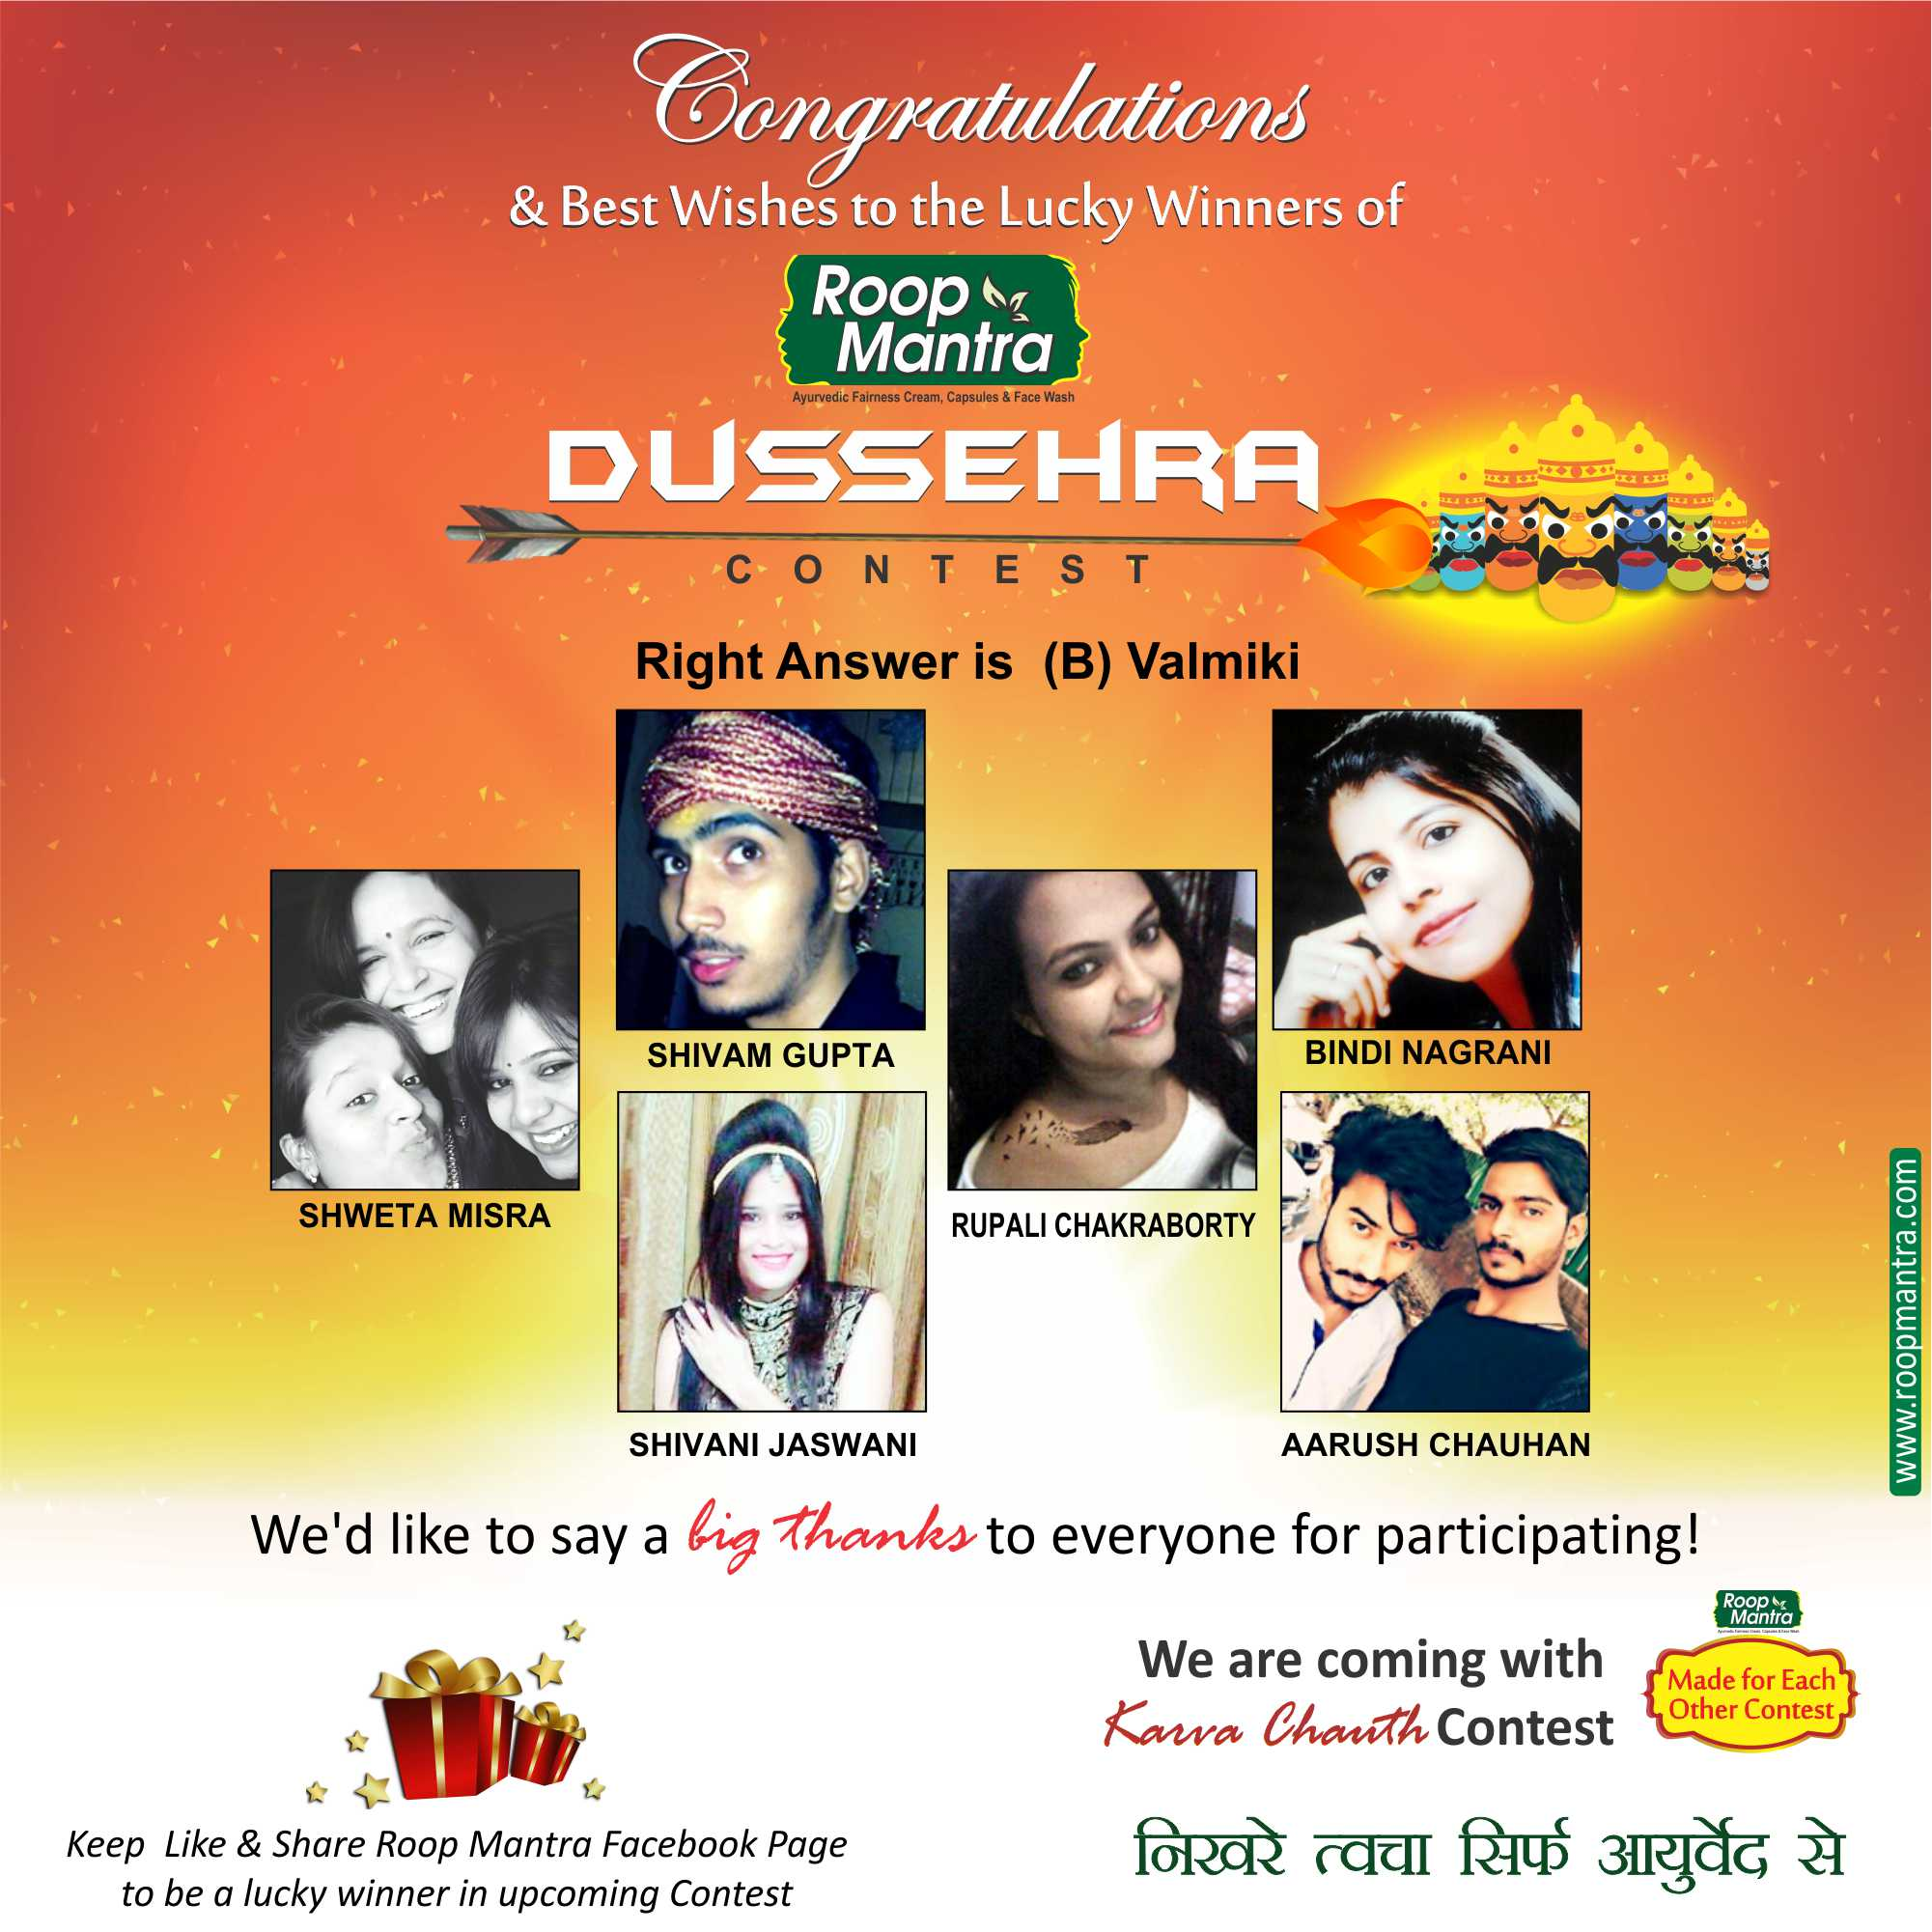 Dussehra Contest Winners – Roop Mantra Ayurvdic fairness Cream